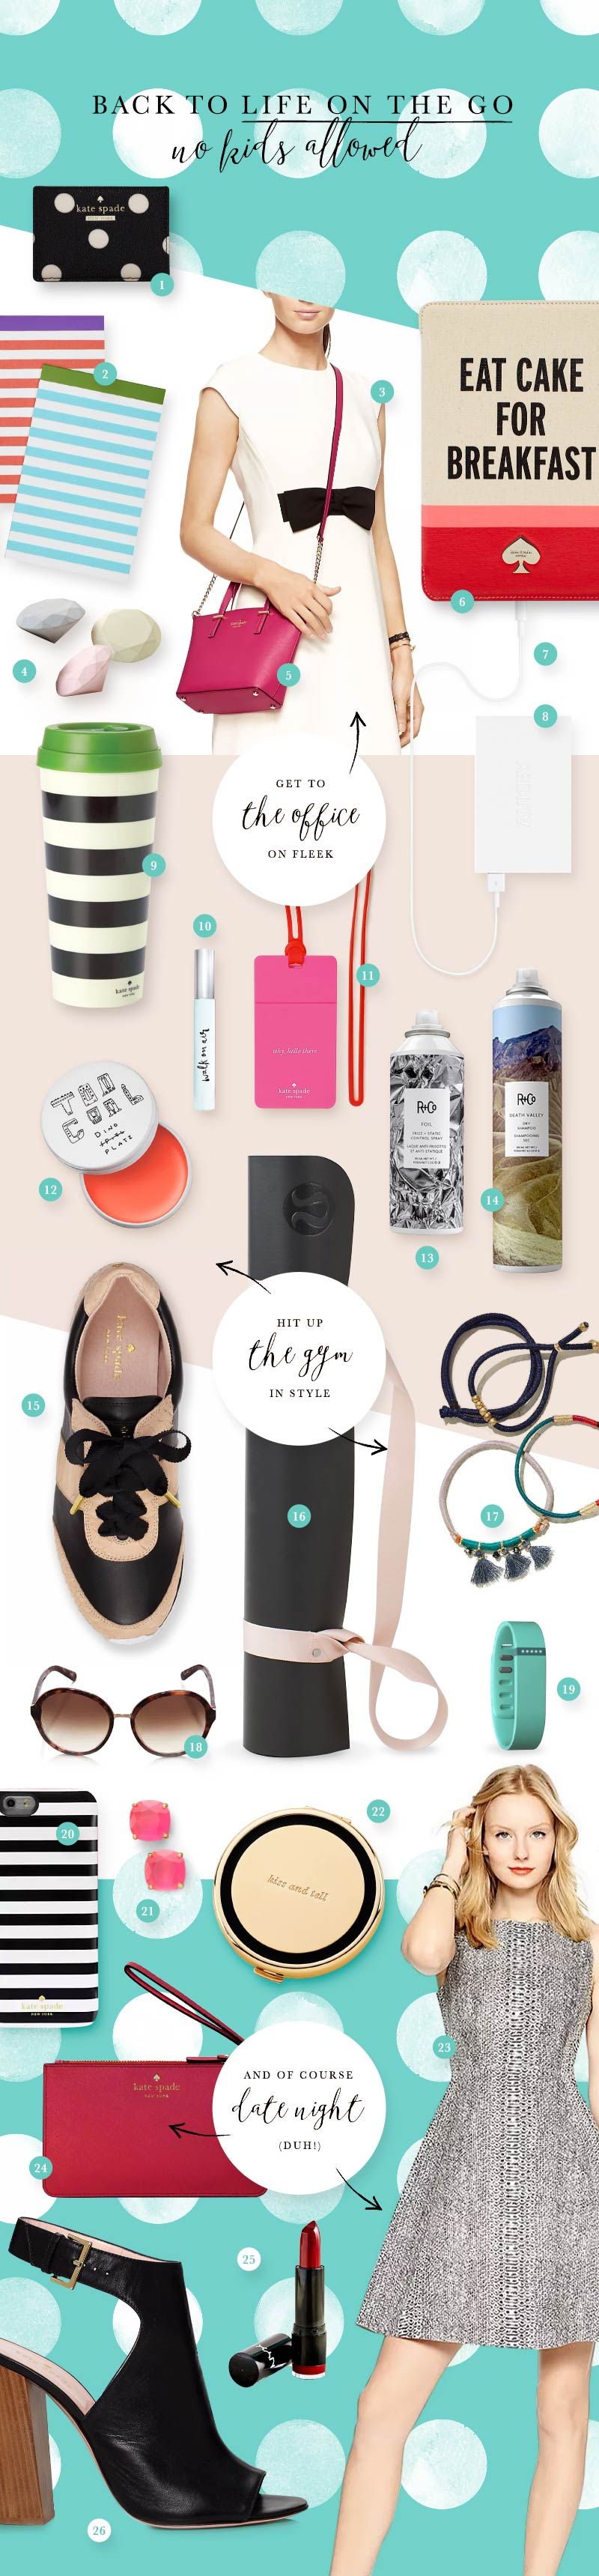 Kate Spade inspiration for back to school